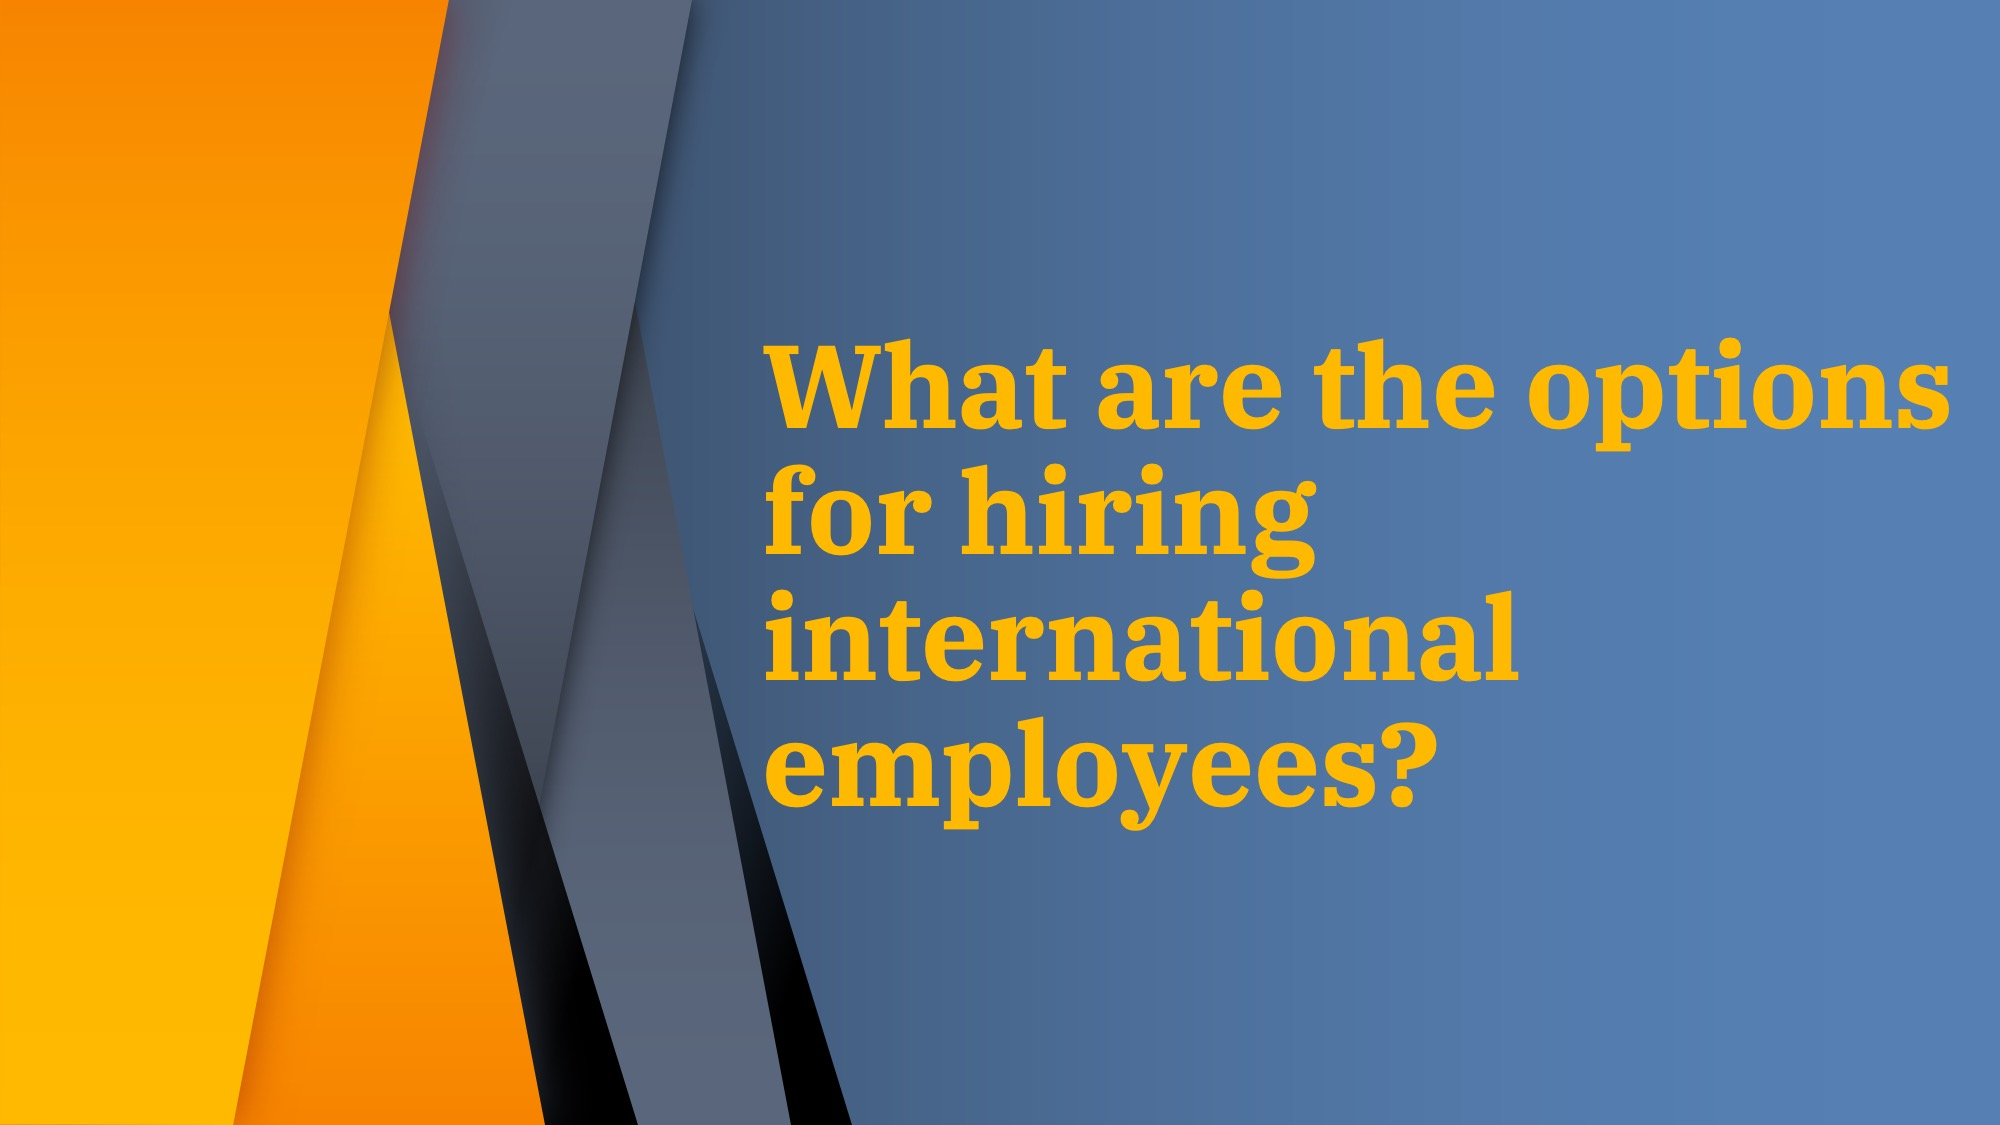 What are the options for hiring international employees?